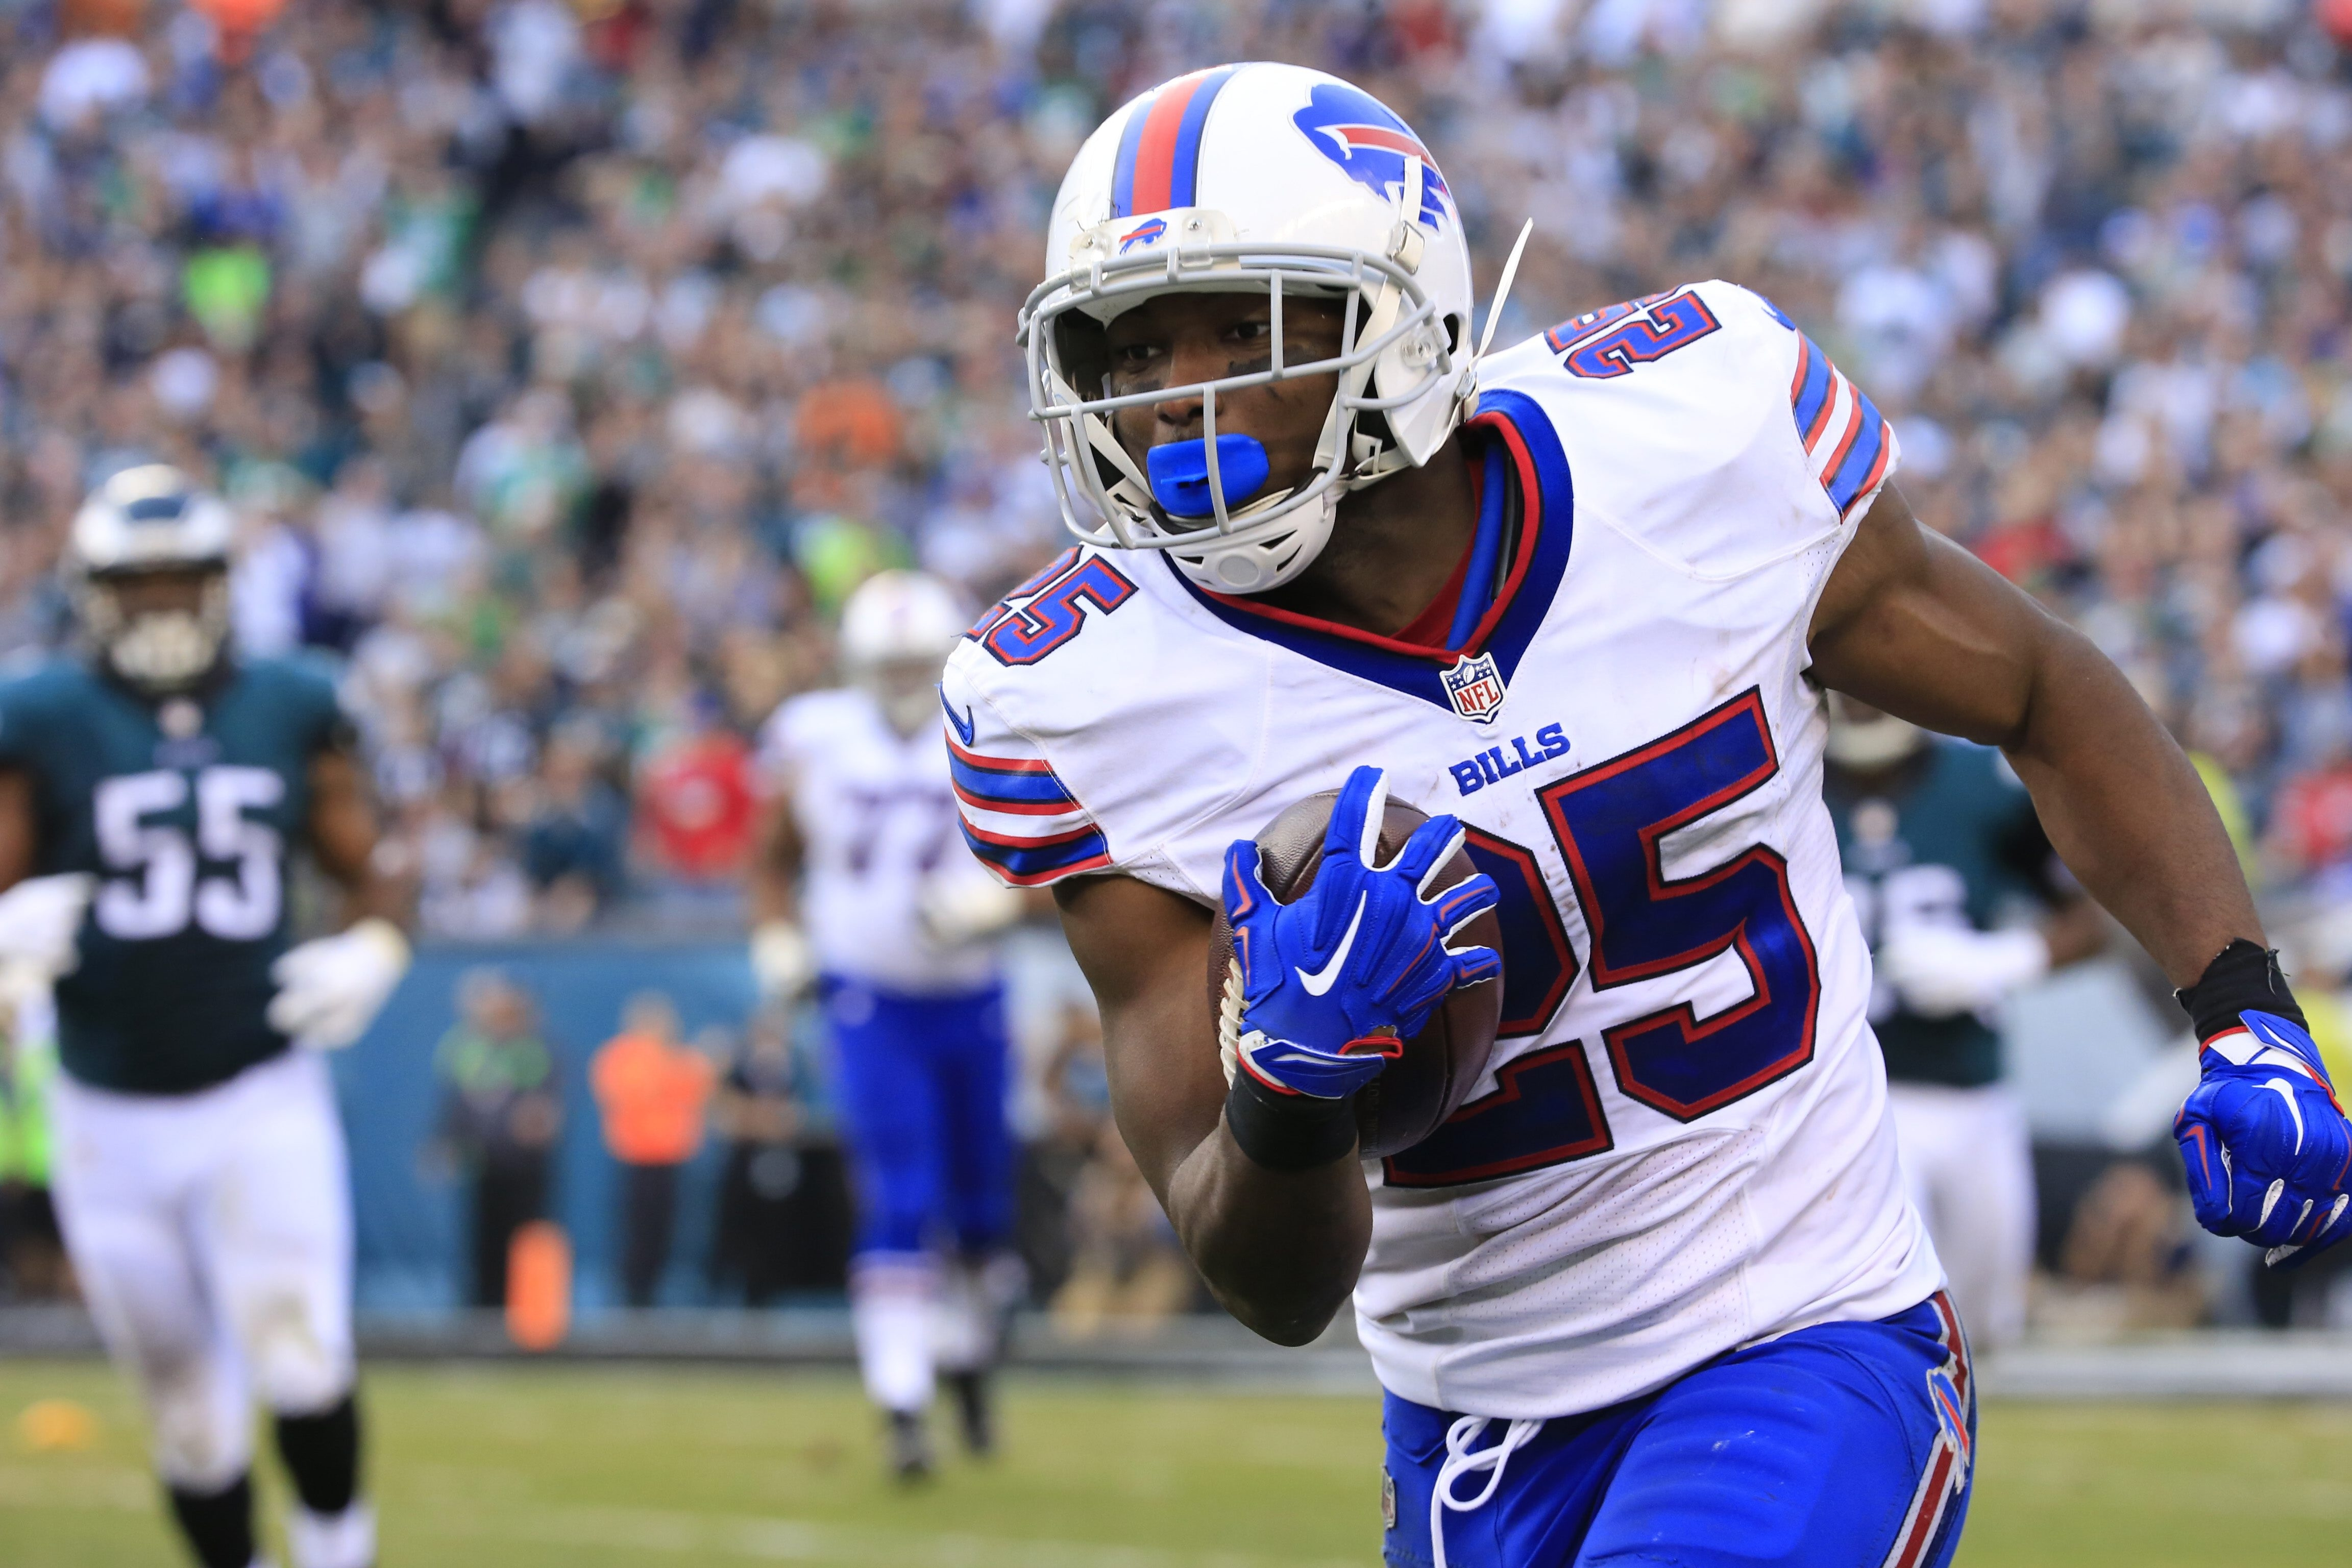 LeSean McCoy ran eight times for just 11 yards in the second half against his former team, the Philadelphia Eagles. (Harry Scull Jr./Buffalo News)